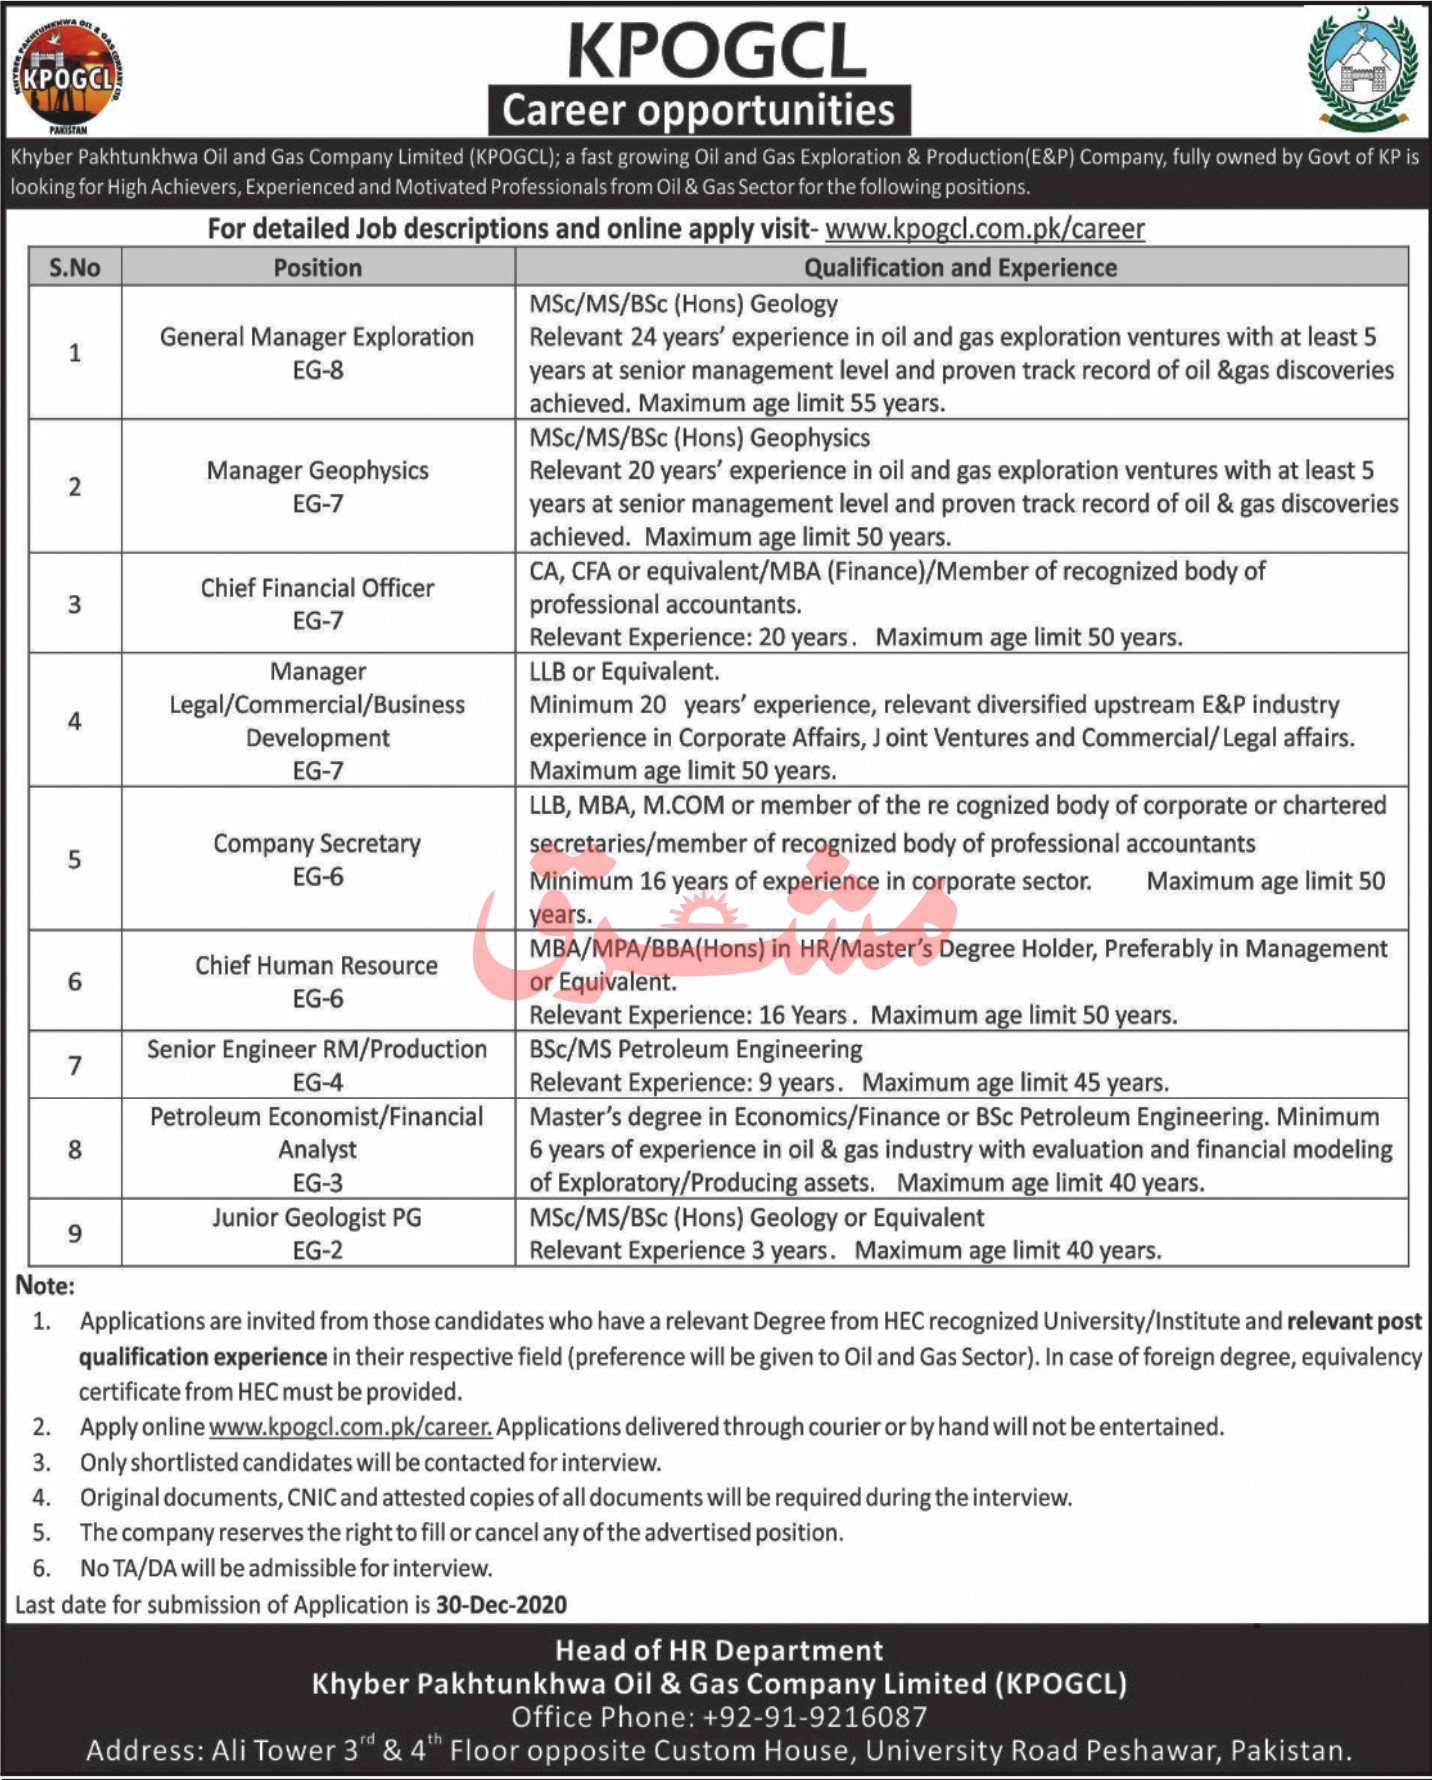 KPOGCL Latest Jobs How to Apply in KPOGCL - Gas Company - Khyber Pakhtunkhwa Oil and Gas Company Limited - www.kpogcl.com.pk/career Latest Jobs 2021